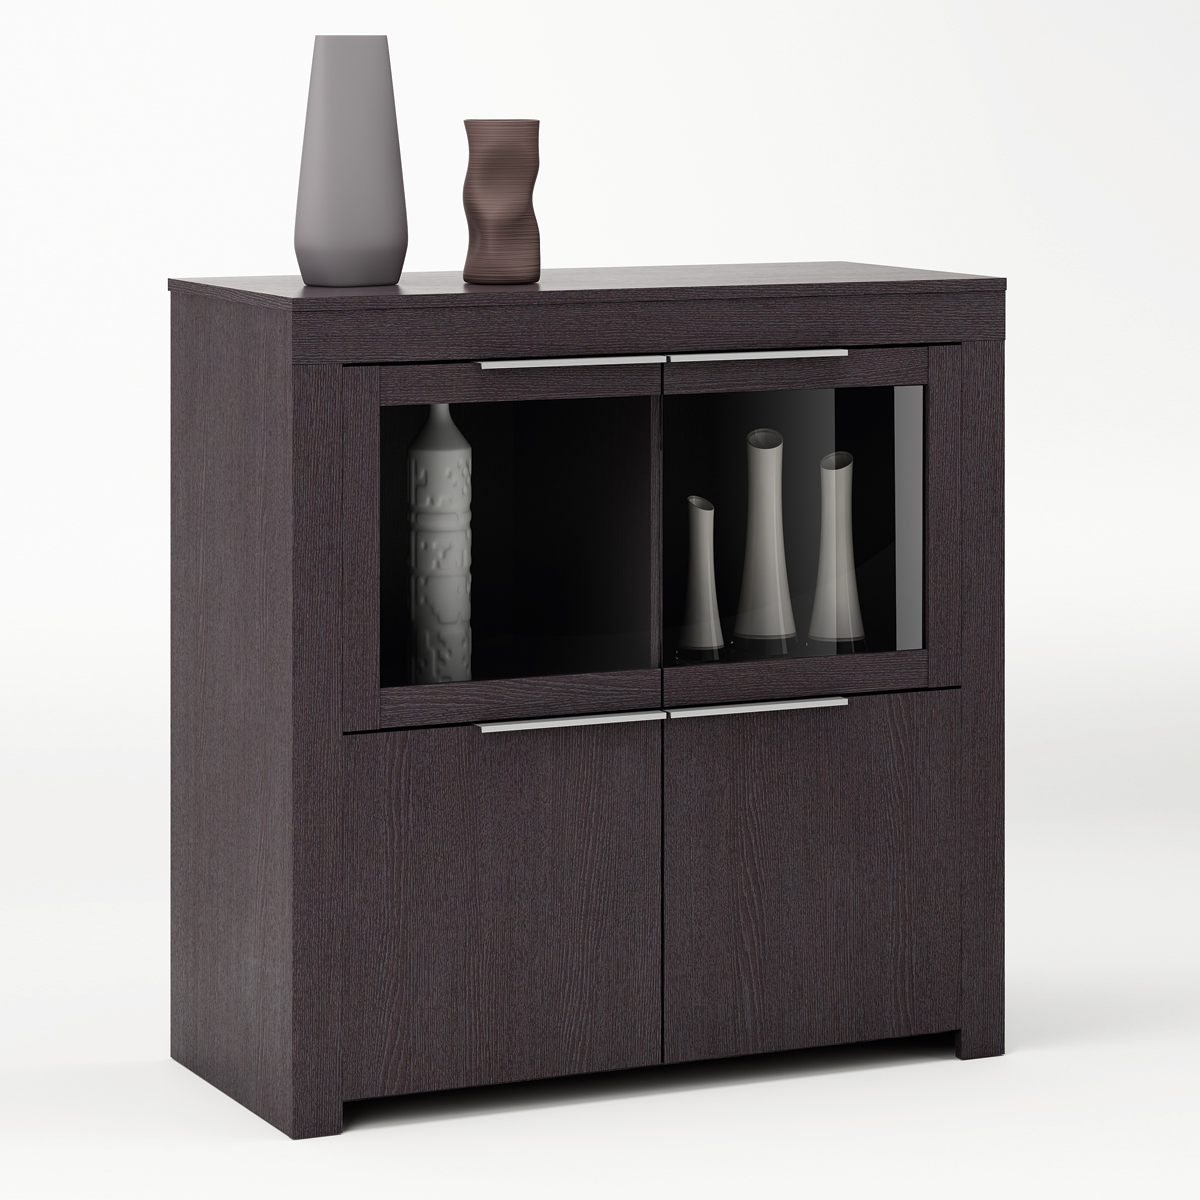 schrank rubis vitrine highboard sideboard stauraumelement in ebenholz braun ebay. Black Bedroom Furniture Sets. Home Design Ideas